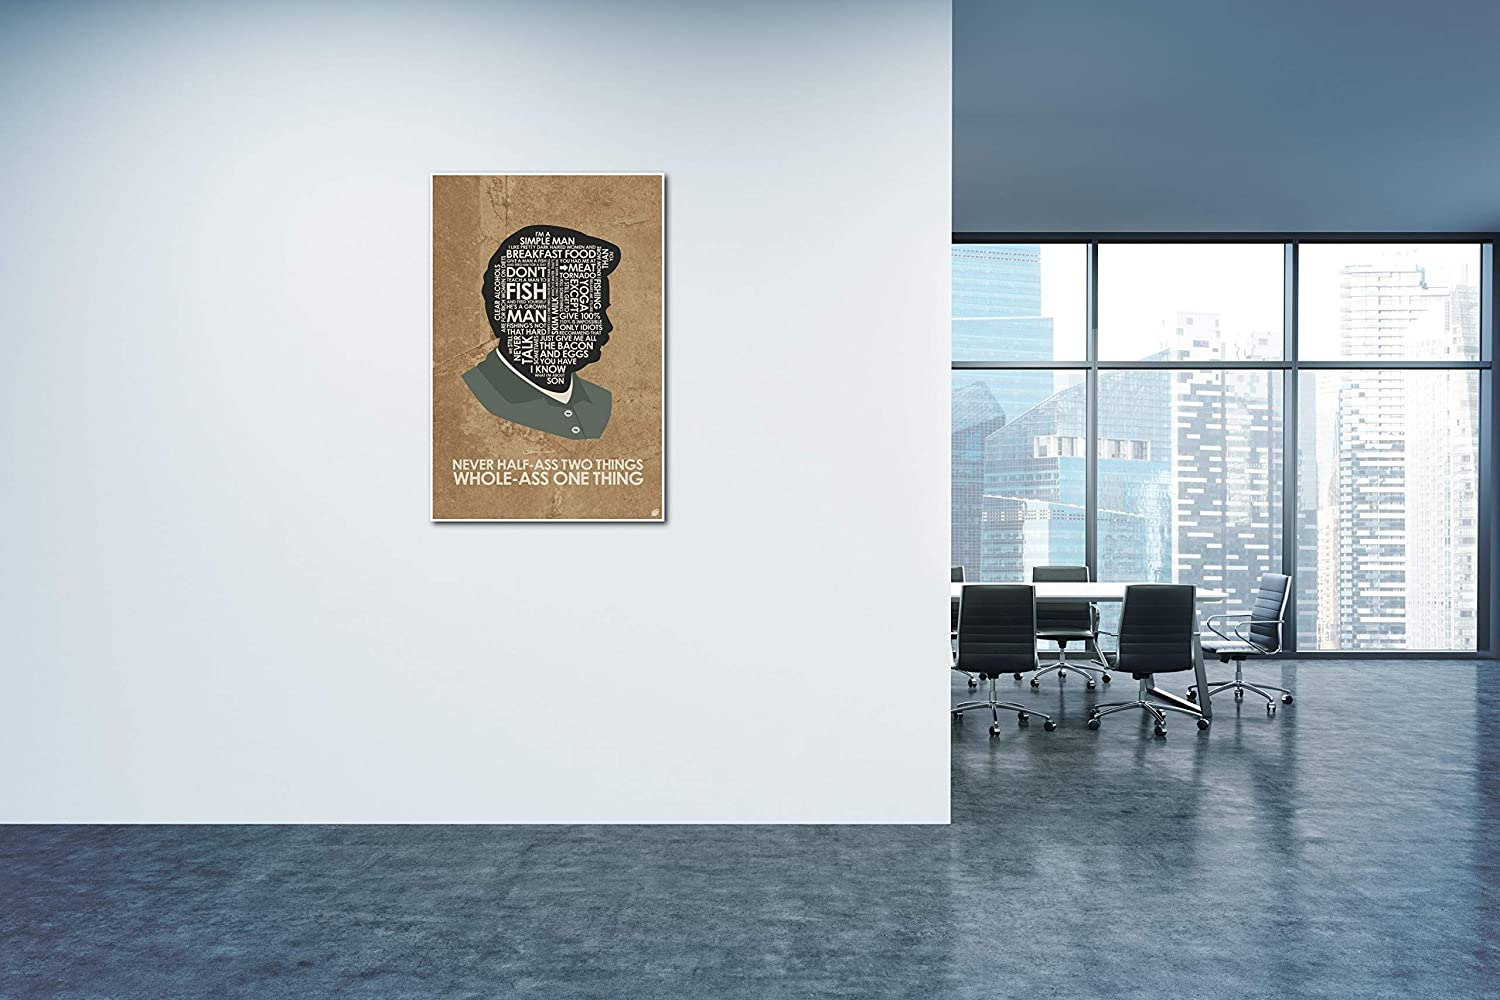 Amazon.com: Parks & Recreation. Ron Swanson: Never Half-Ass Two Things. Art Print Poster (24